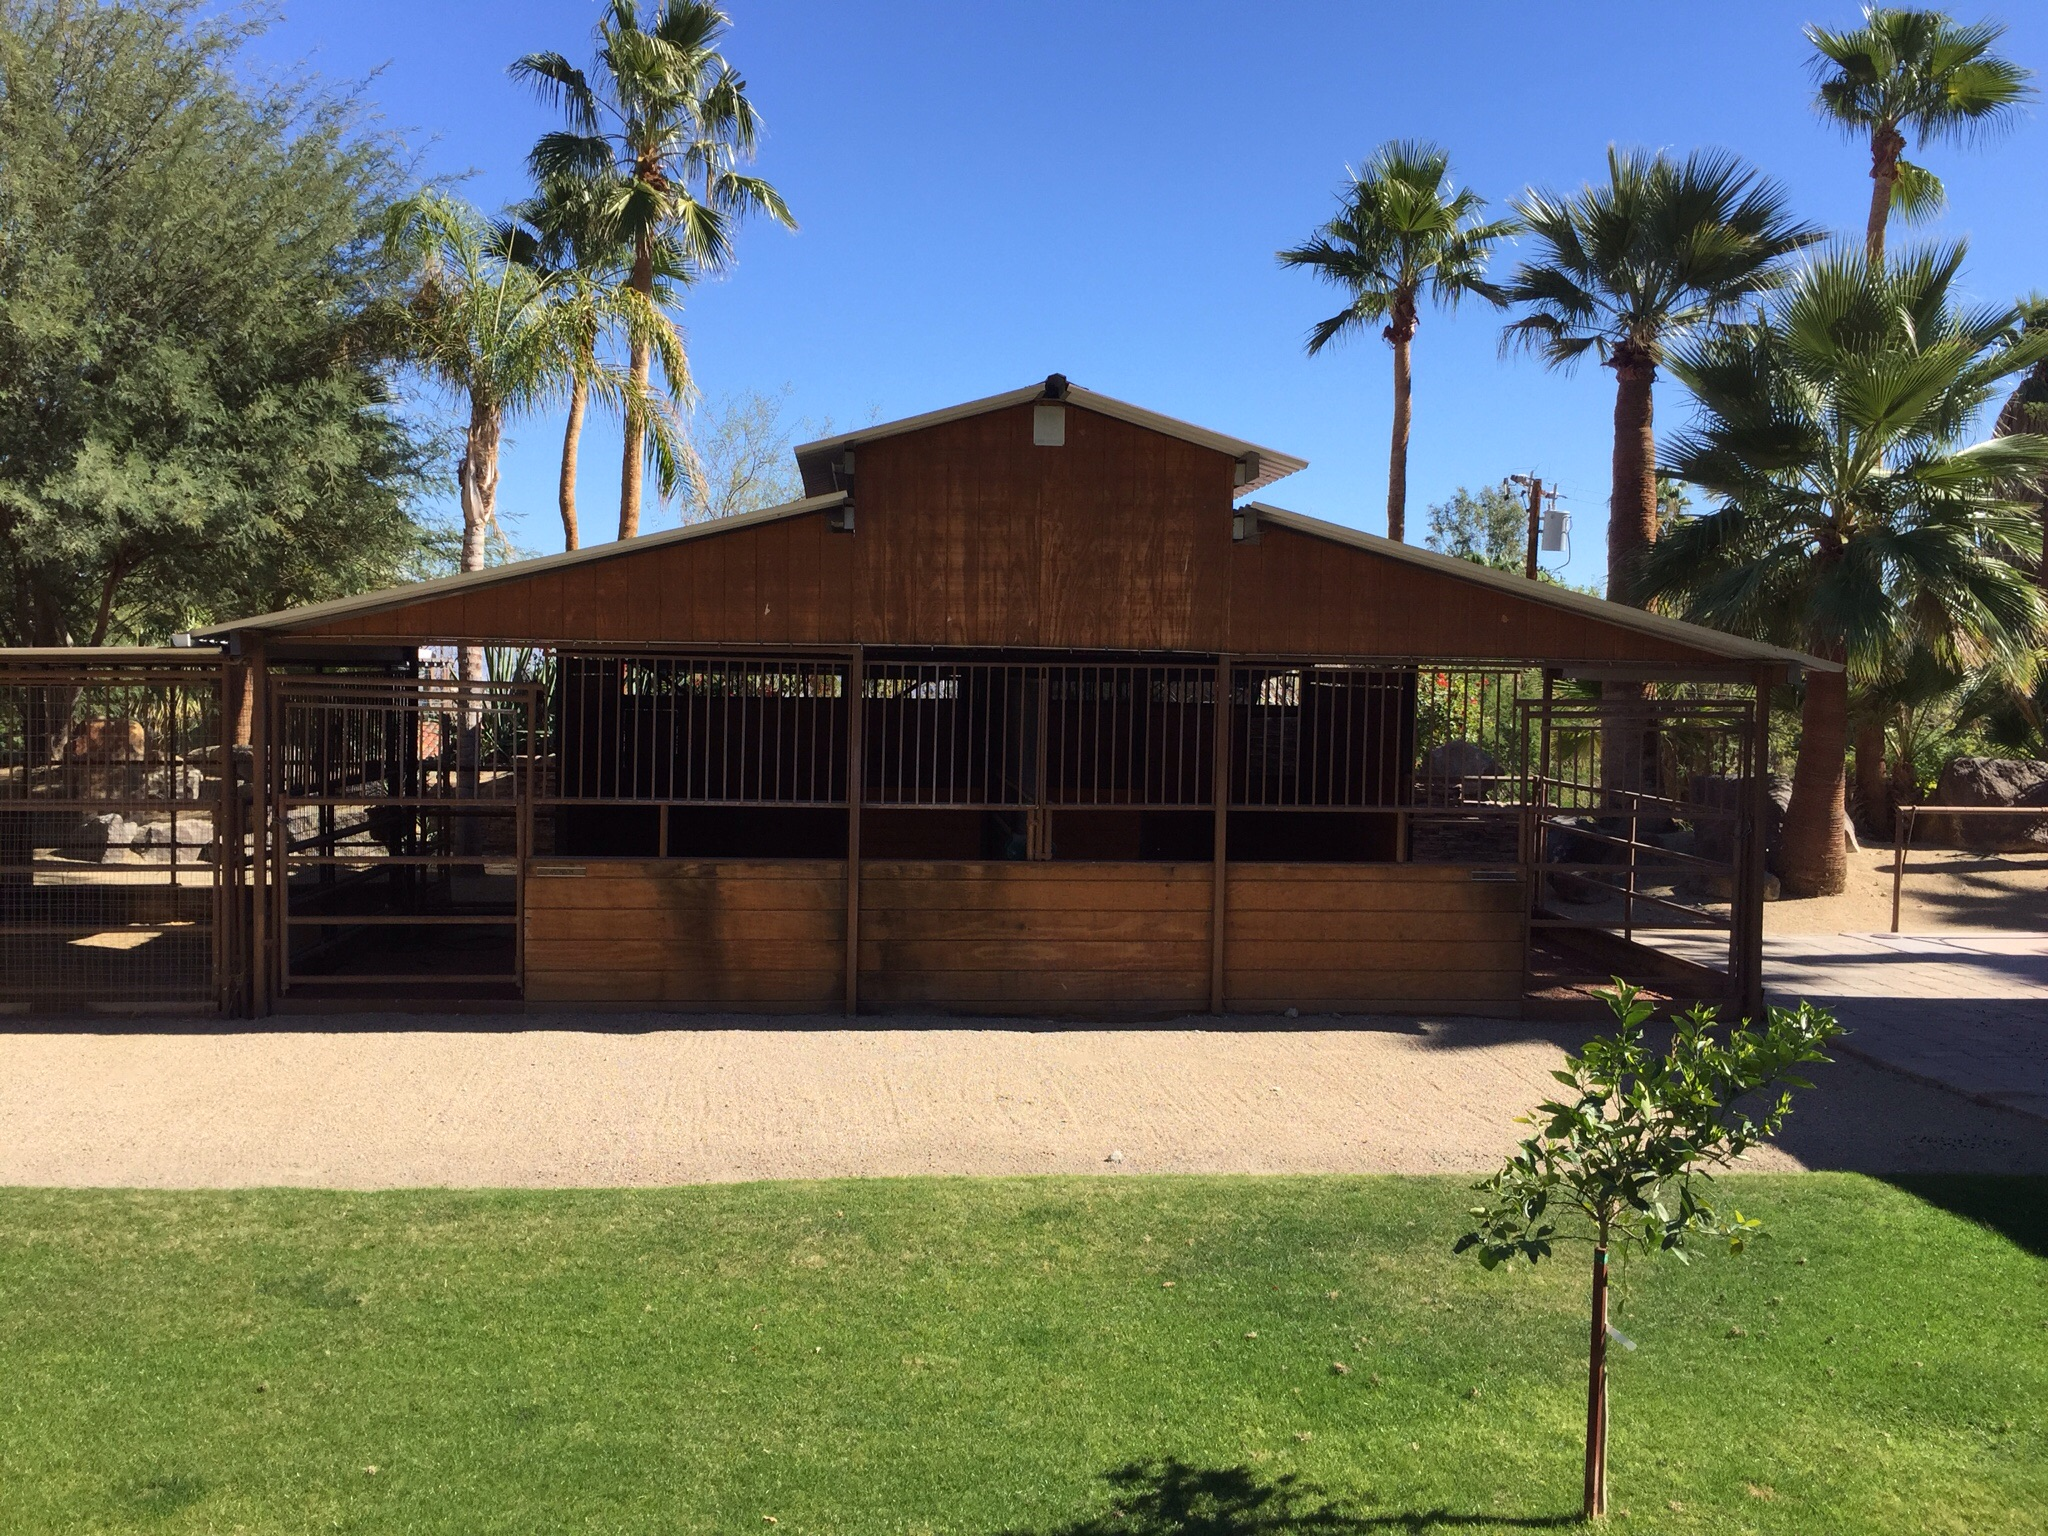 Castlebrook stables and an RV Structure for sale.